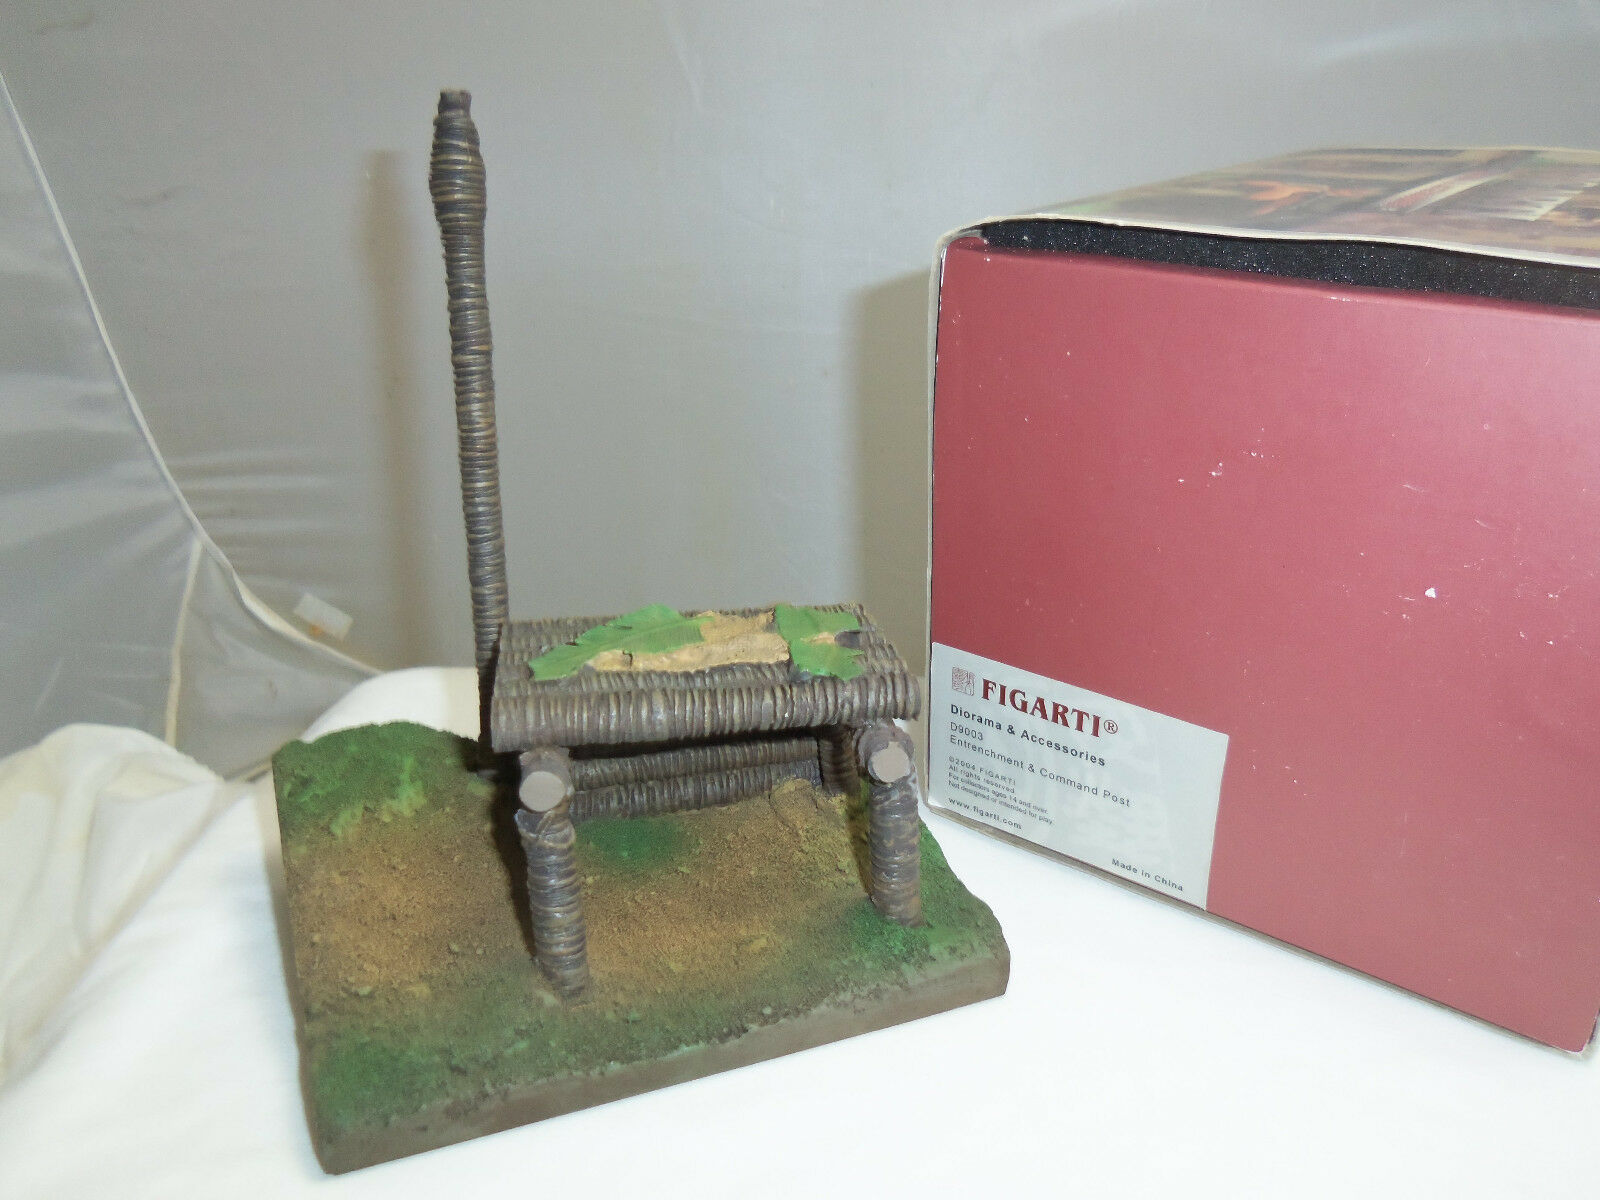 FIGARTI D9003 WORLD WAR TWO ENTRENCHMENT + COMMAND POST DIORAMA SCENARY ITEM